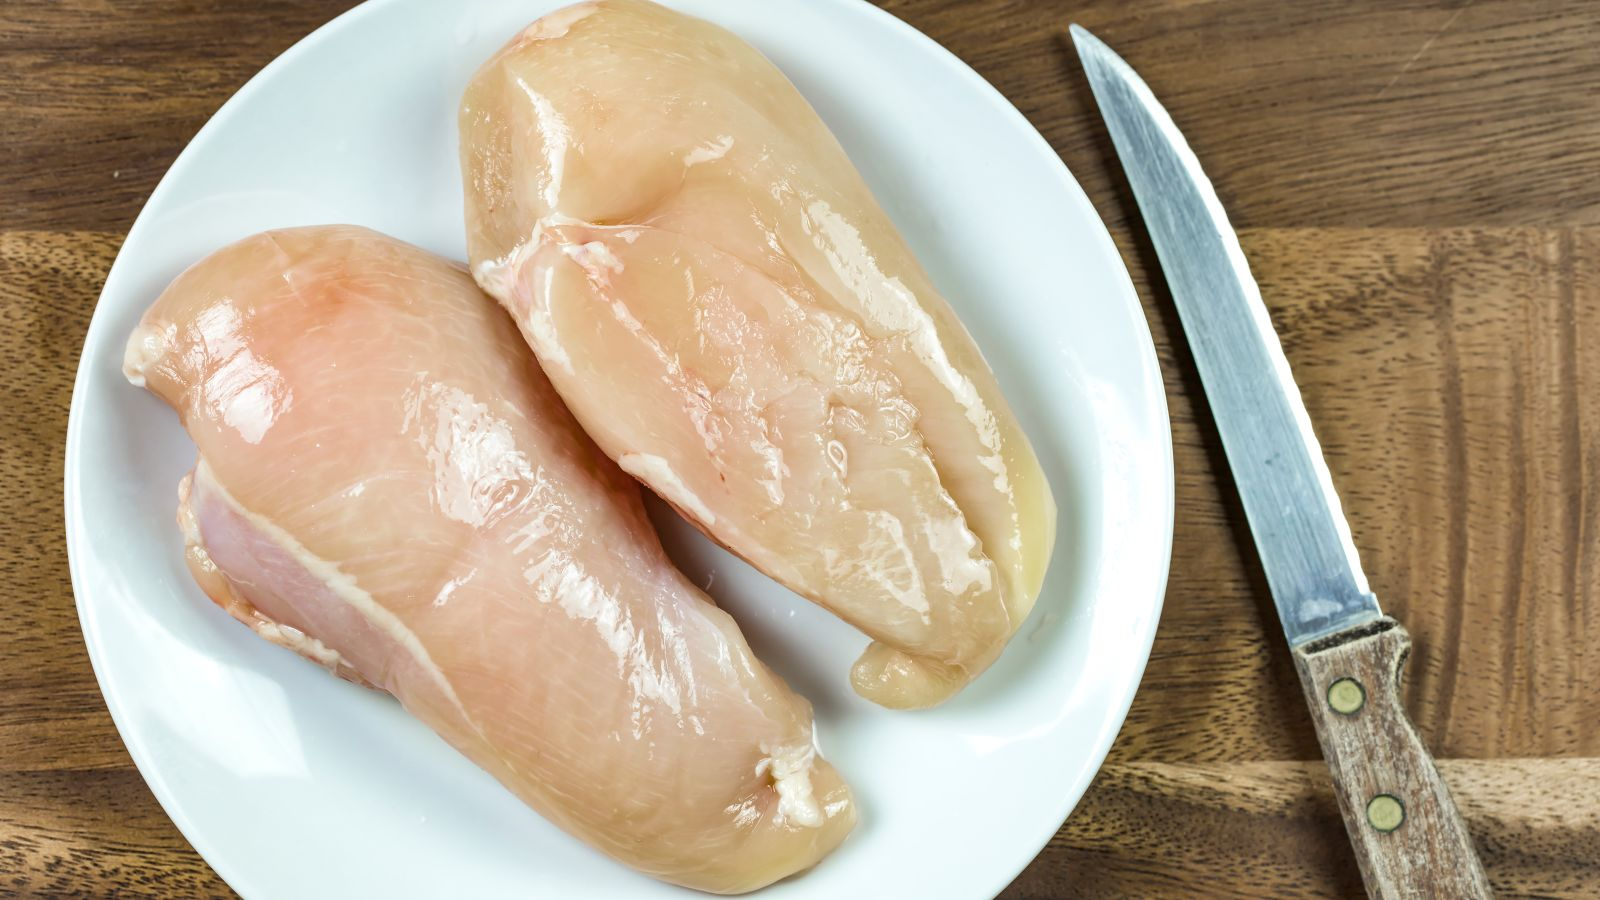 raw-or-undercooked-poultry en grávida